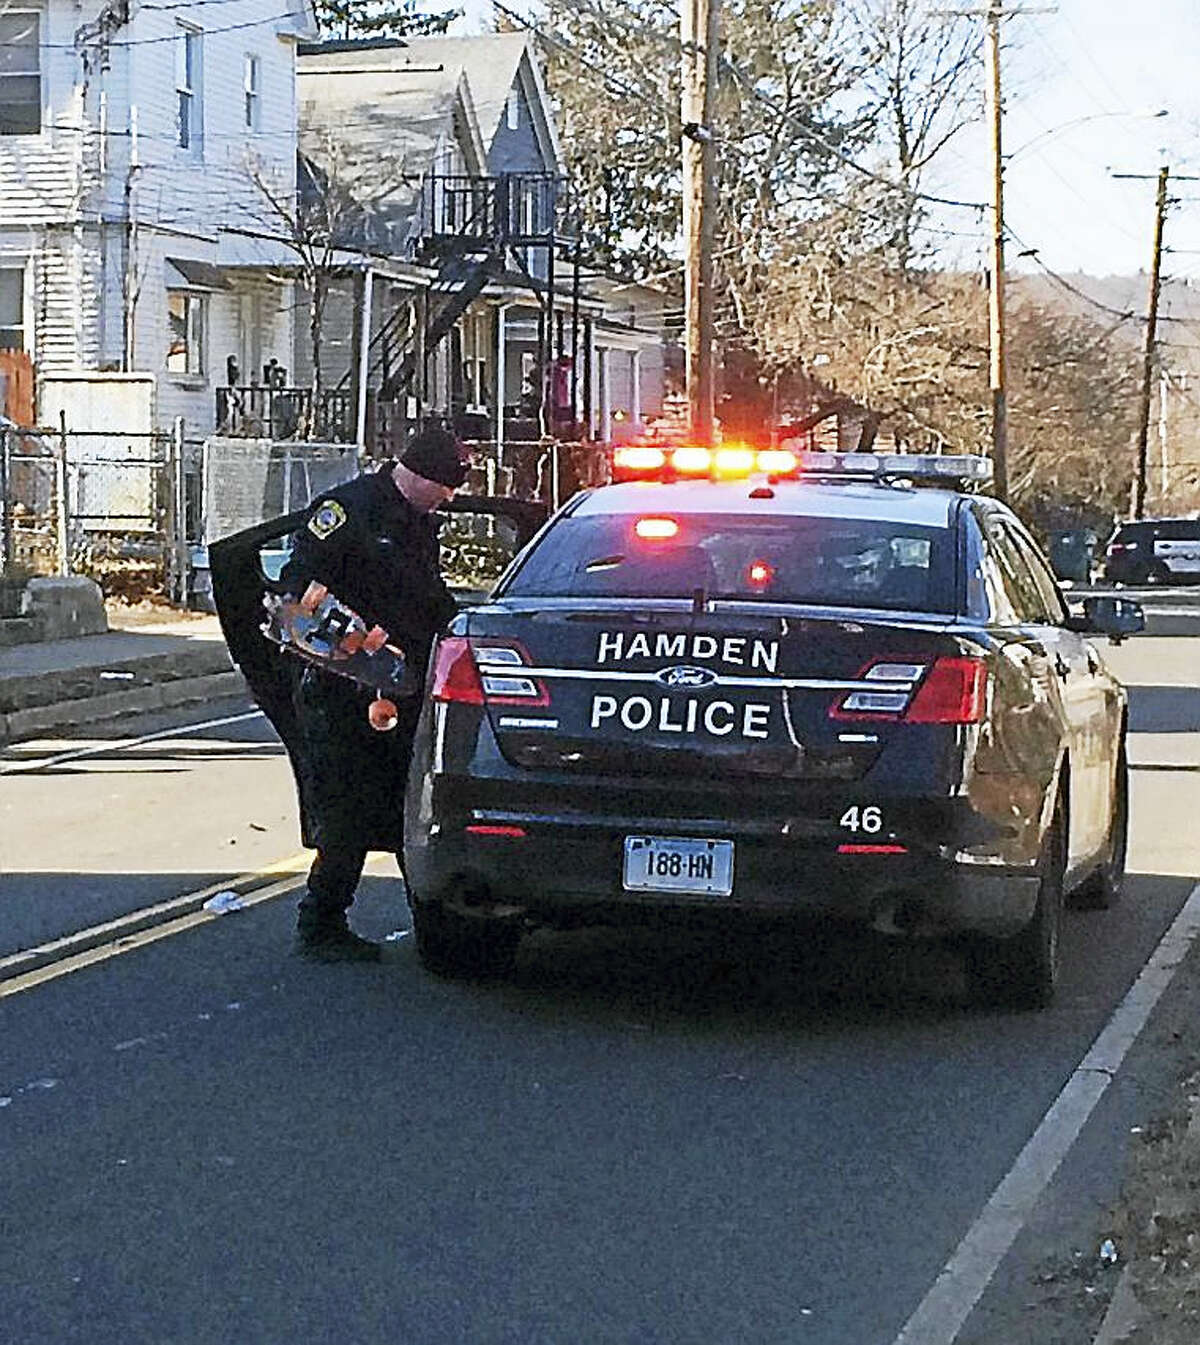 Part of Arch Street in Hamden was shut down for a short time Friday morning after a skateboarder was hit by a car. The impact broke the skateboard in half but its rider's injuries were not considered life-threatening.